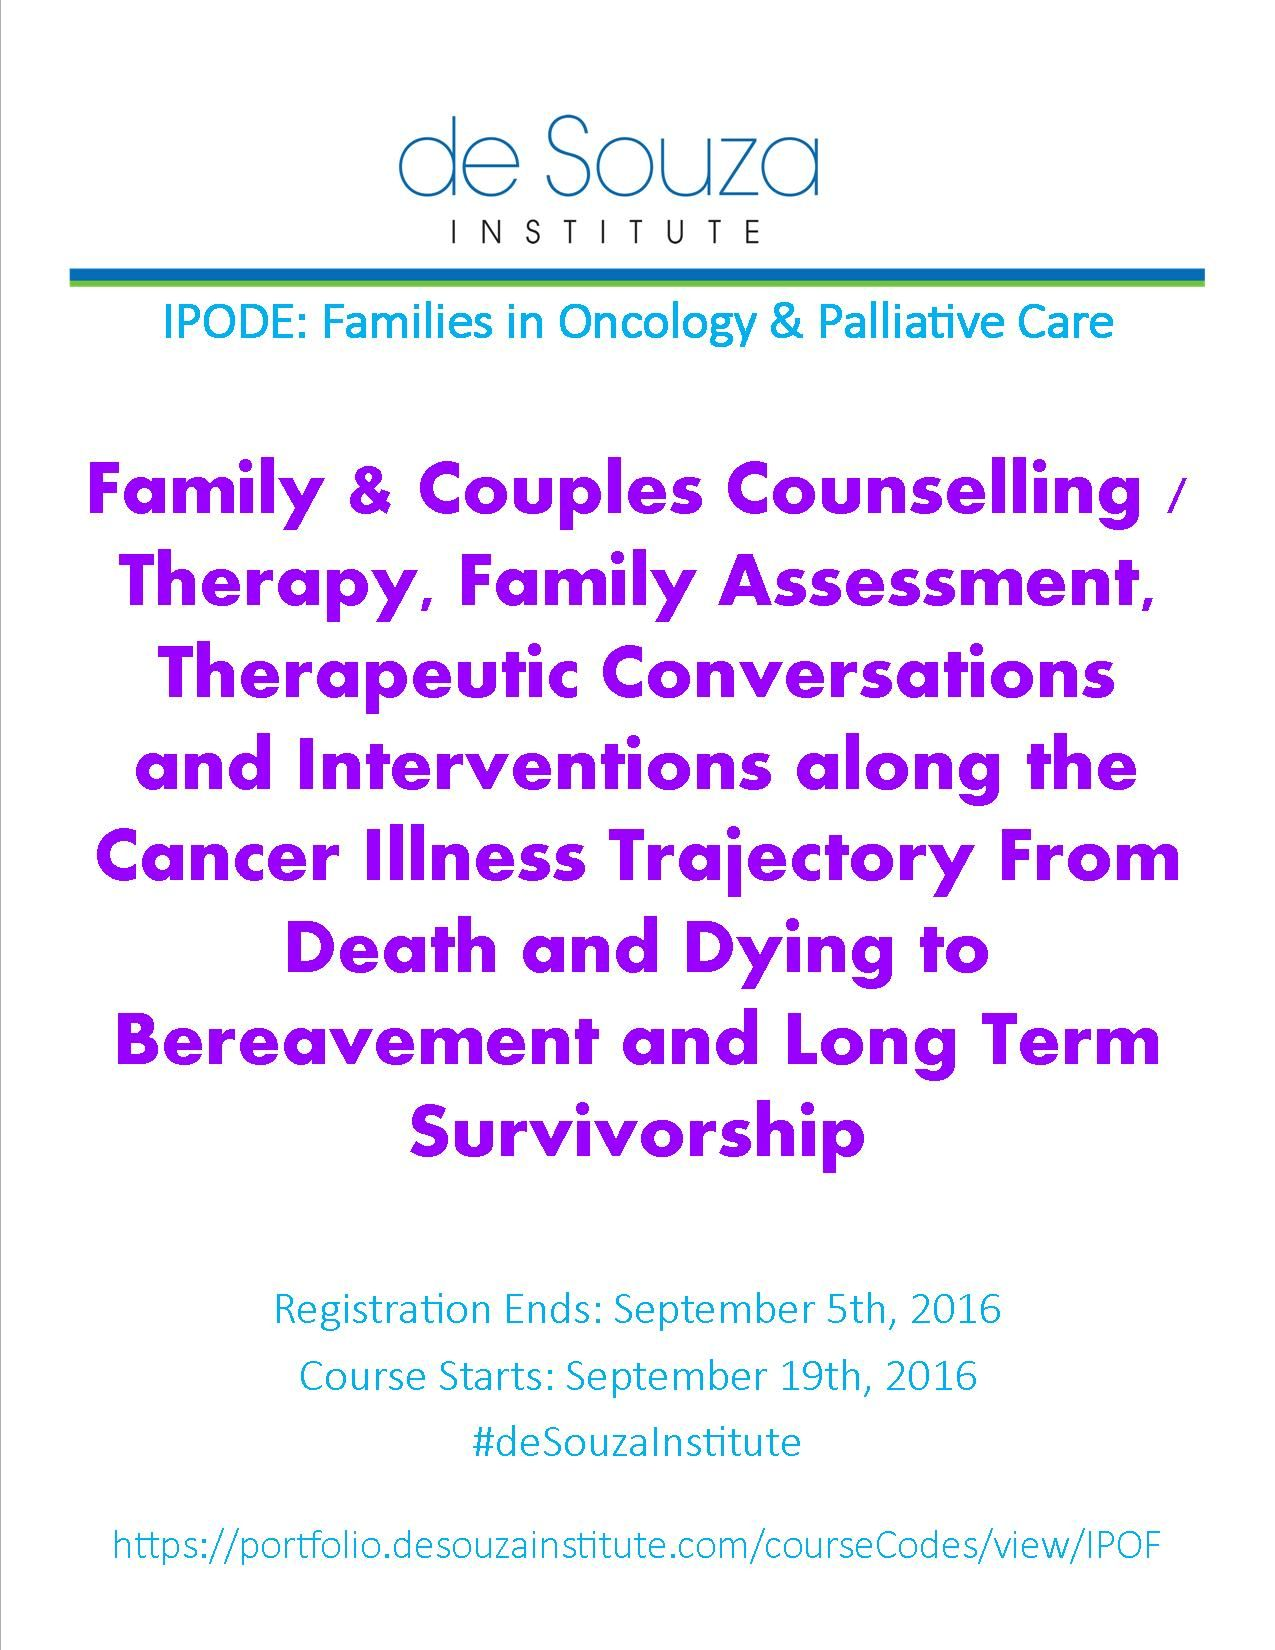 Our IPODE with Families in Oncology & Palliative